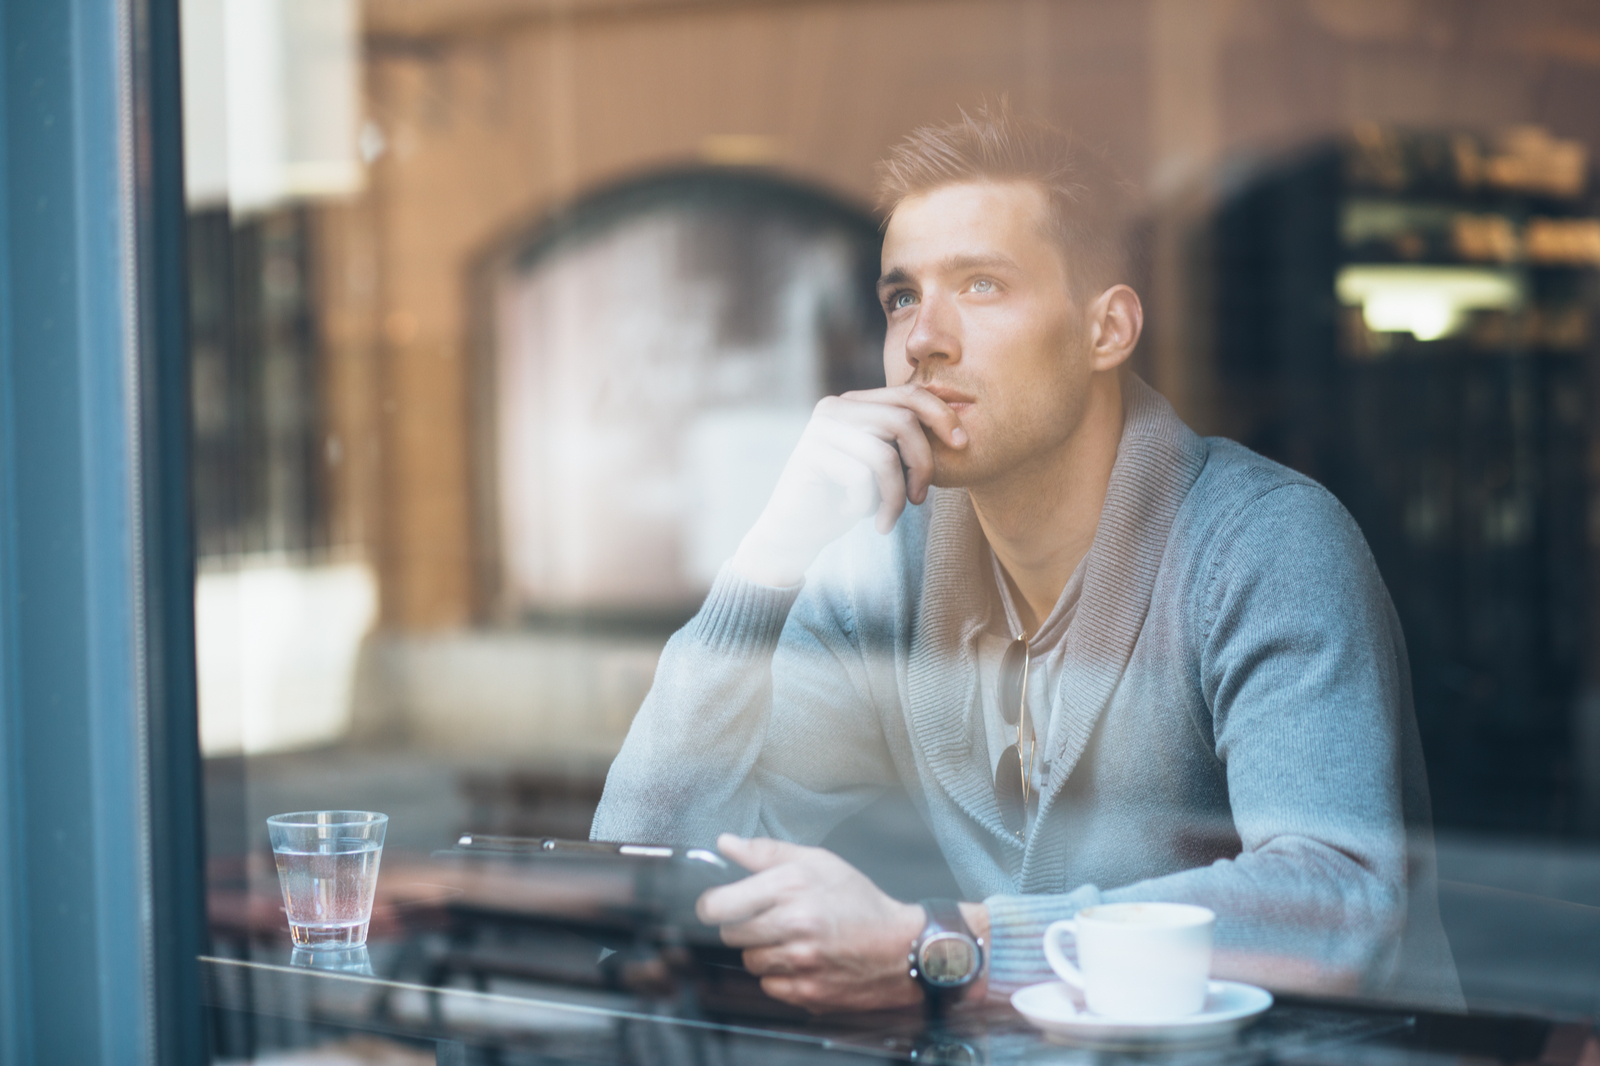 in a cafe by the window behind the bar sits a man with a tablet in his hand and thinks